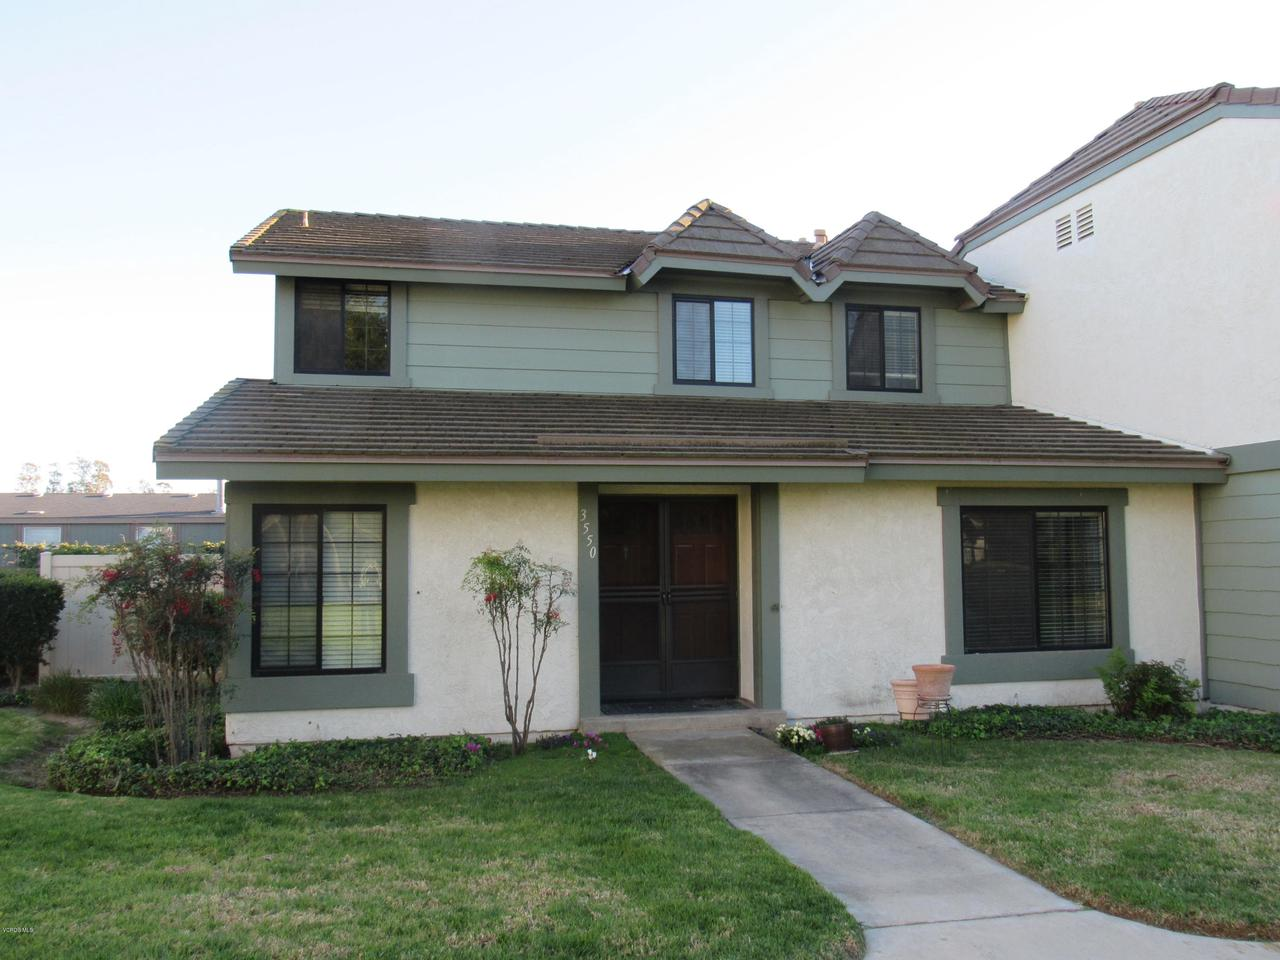 Photo of 3550 OLDS ROAD, Oxnard, CA 93033